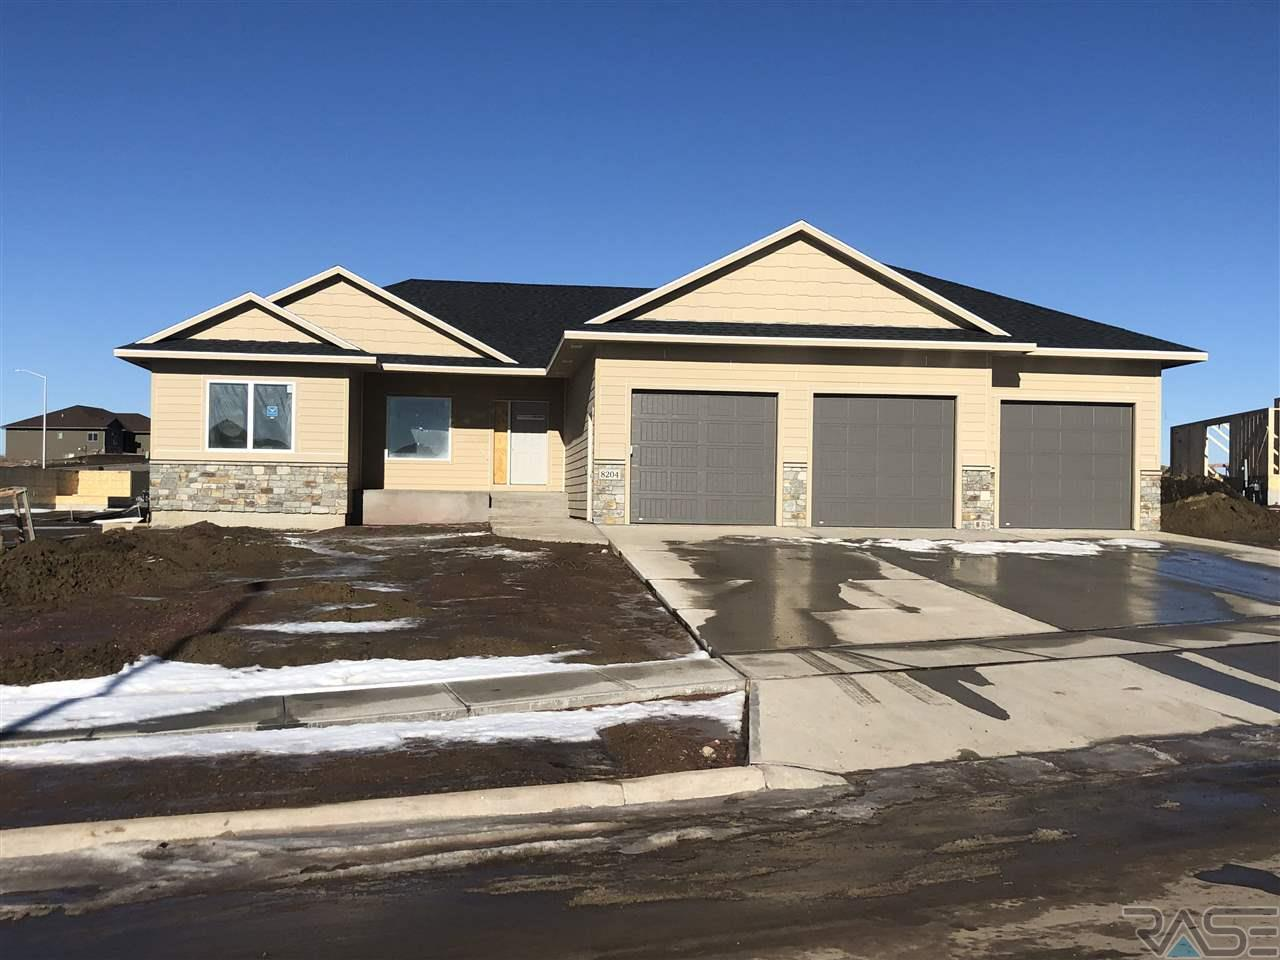 Property for sale at 8204 E Mystic Dr, Sioux Falls,  SD 57110